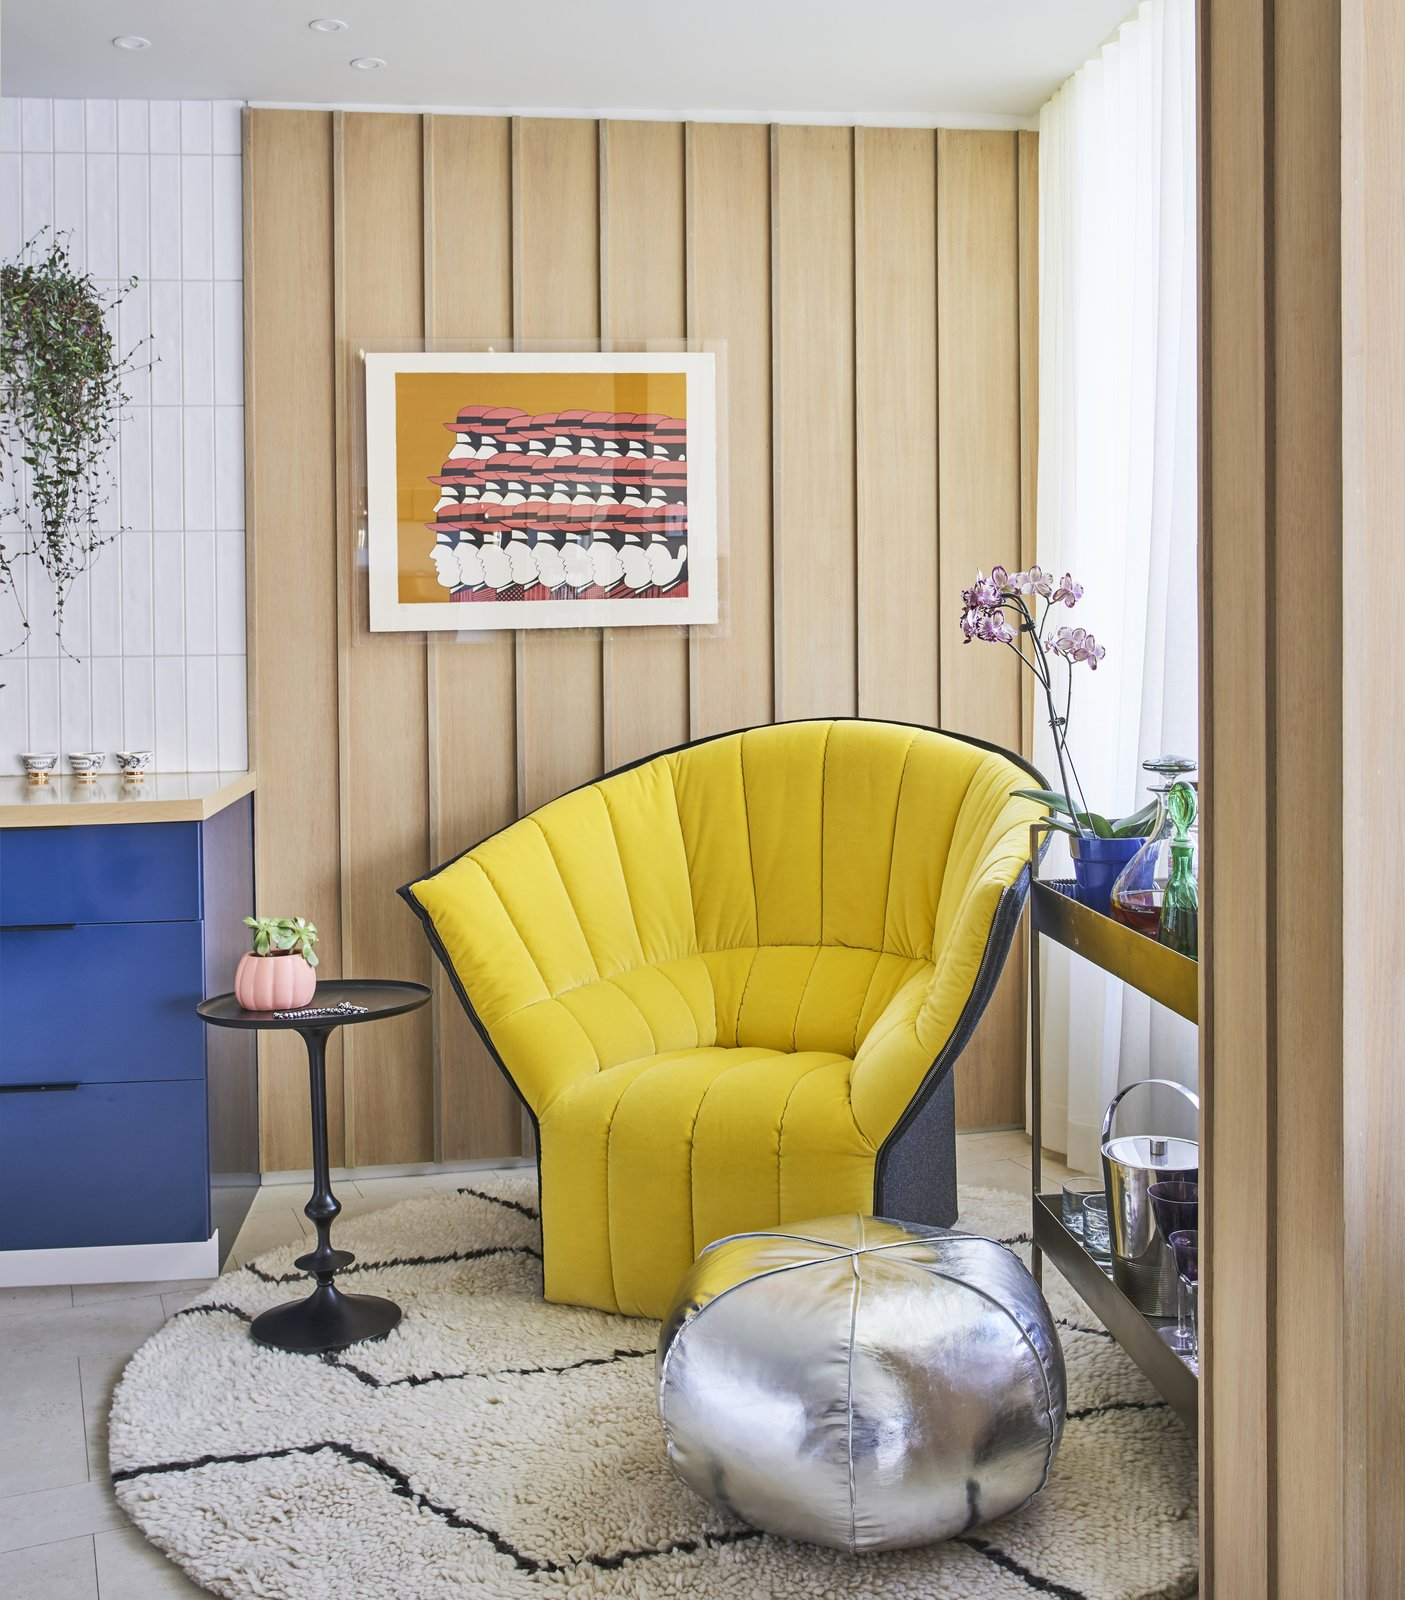 Living, Chair, End Tables, Rug, and Cork Near the kitchen, a Moel chair by Inga Sempé for Ligne Roset joins a bar trolley, side table, and pouf from Crate and Barrel. A Yannis Gaitis lithograph hangs on a wall of white oak plywood. Architect Mike Shively came up with the vertical strips to add texture. - Chicago, Illinois Dwell Magazine : September / October 2017  Best Living Cork Chair Photos from An Interior Designer Helps His Mother Turn Her 1960s Chicago Apartment Into a Colorful Haven